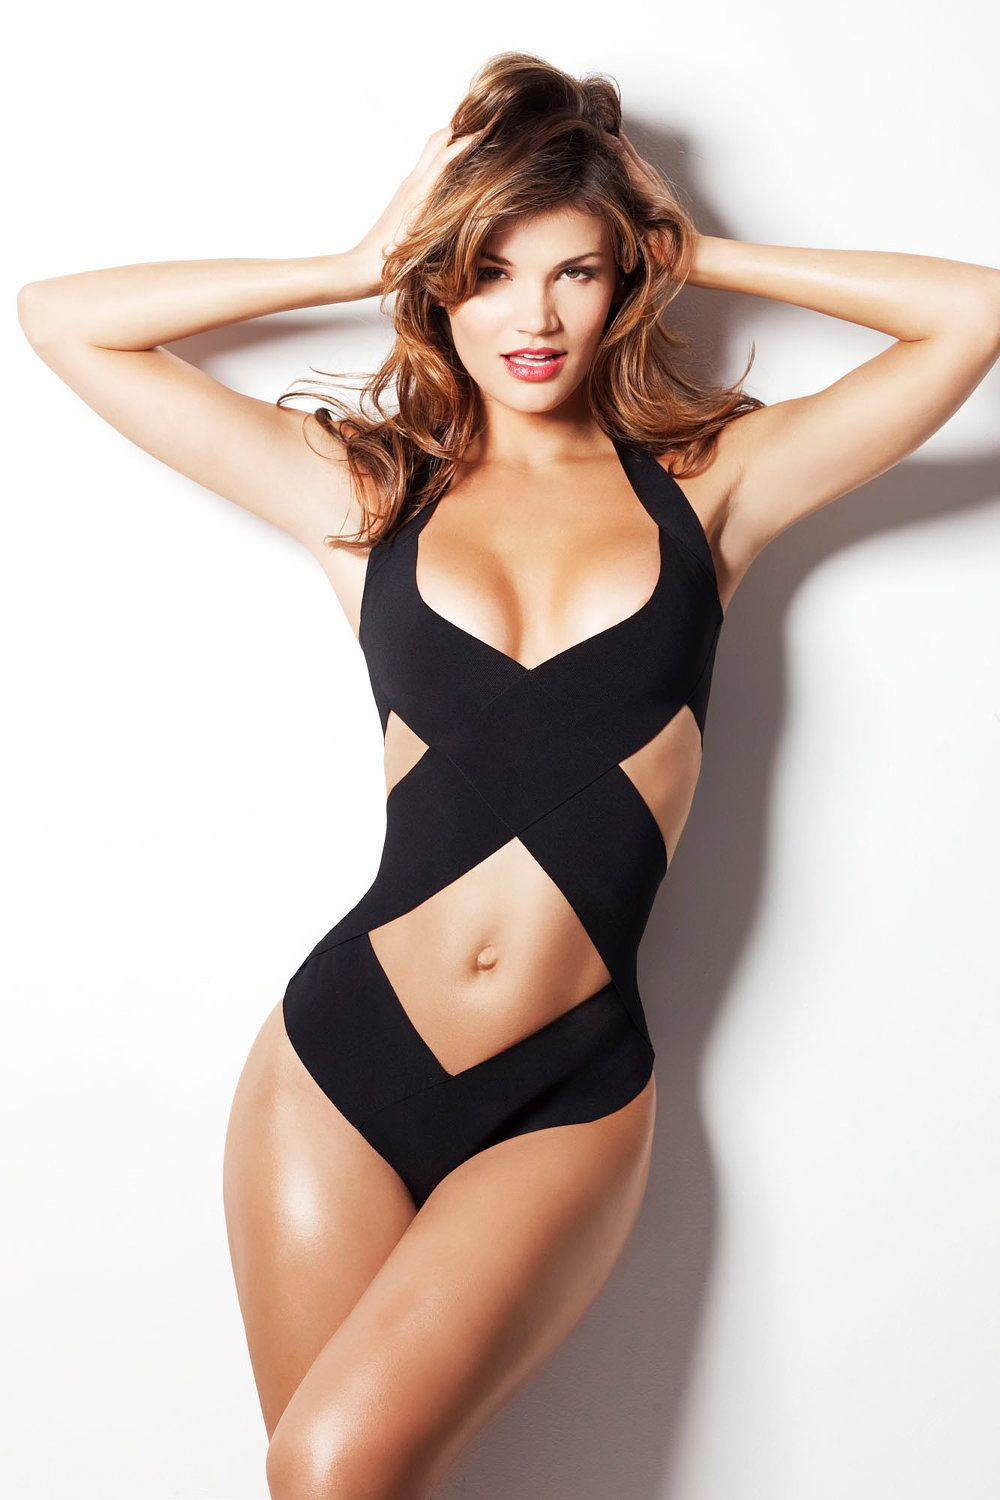 cbc0805858a41 Bandage swimsuit  bathing suit as seen in GQ